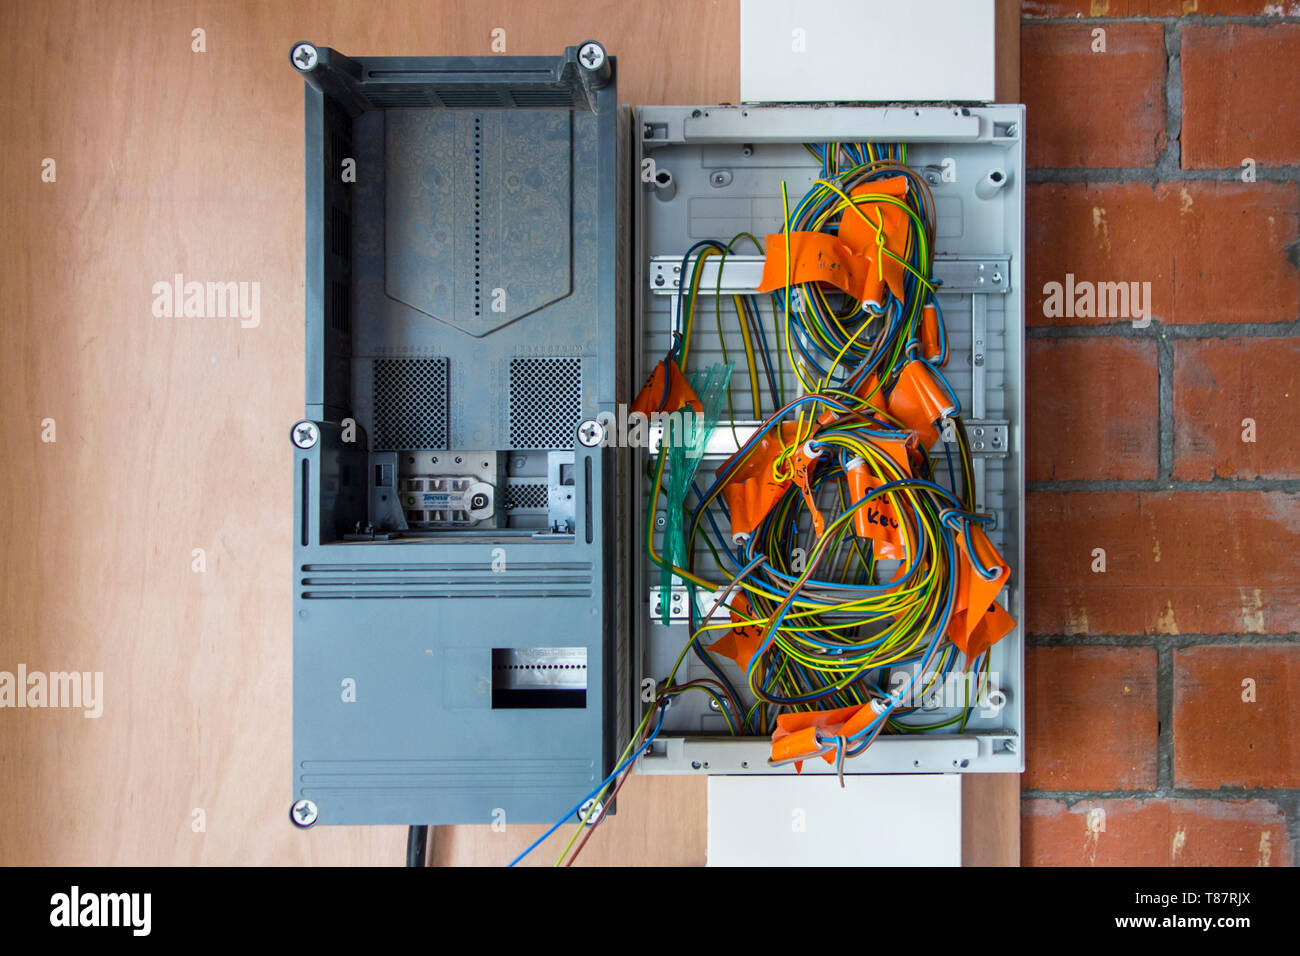 electric wires / electrical cables / wiring in new fuse box in newly built  house under